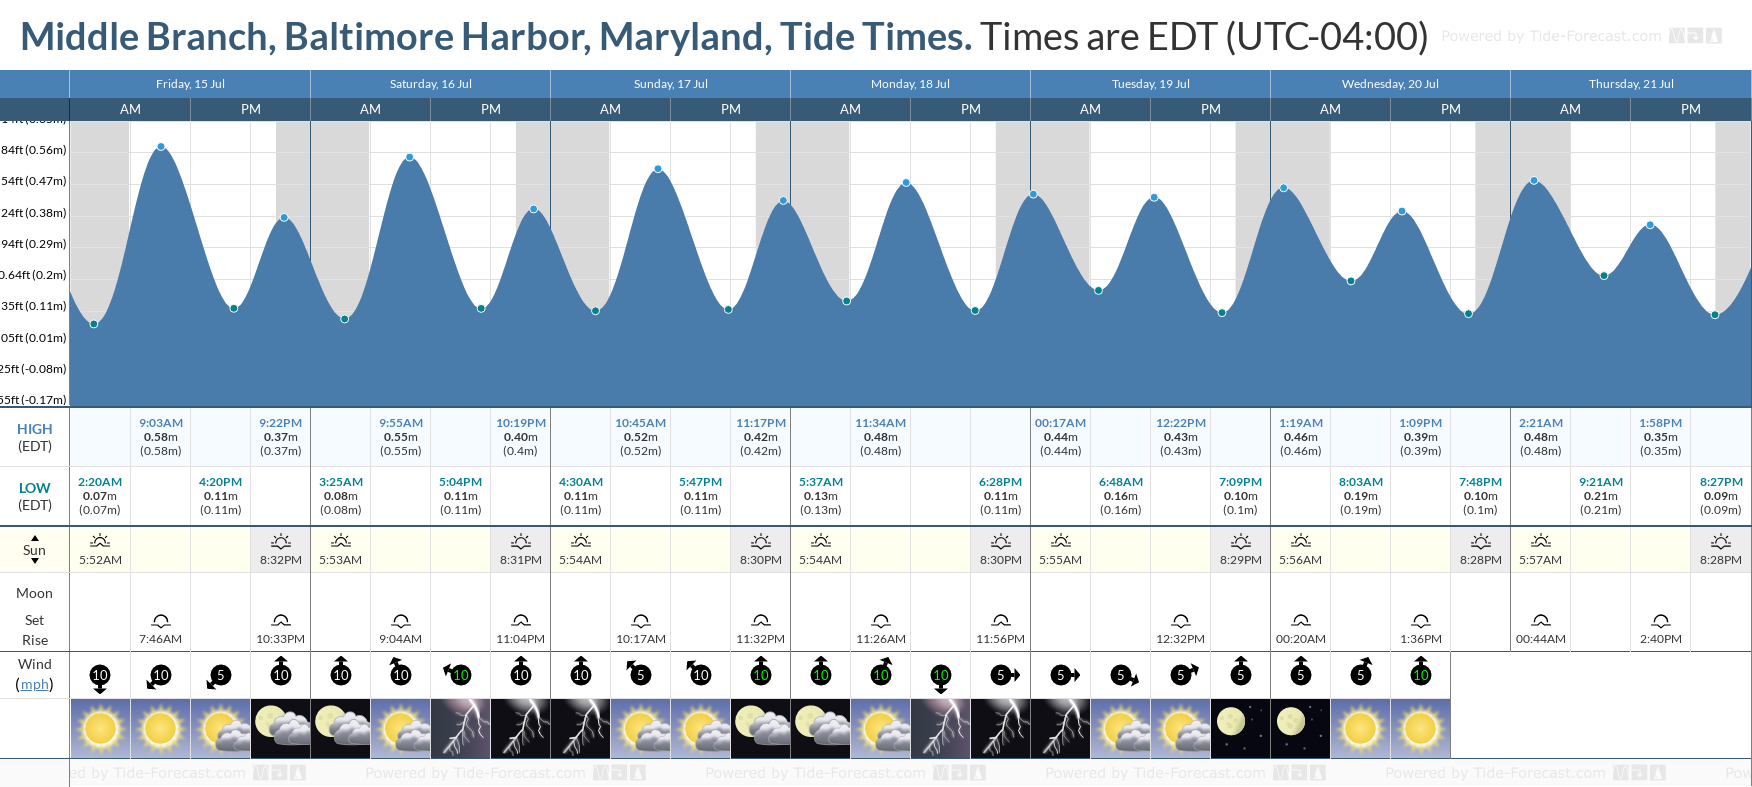 Middle Branch, Baltimore Harbor, Maryland Tide Chart including high and low tide tide times for the next 7 days